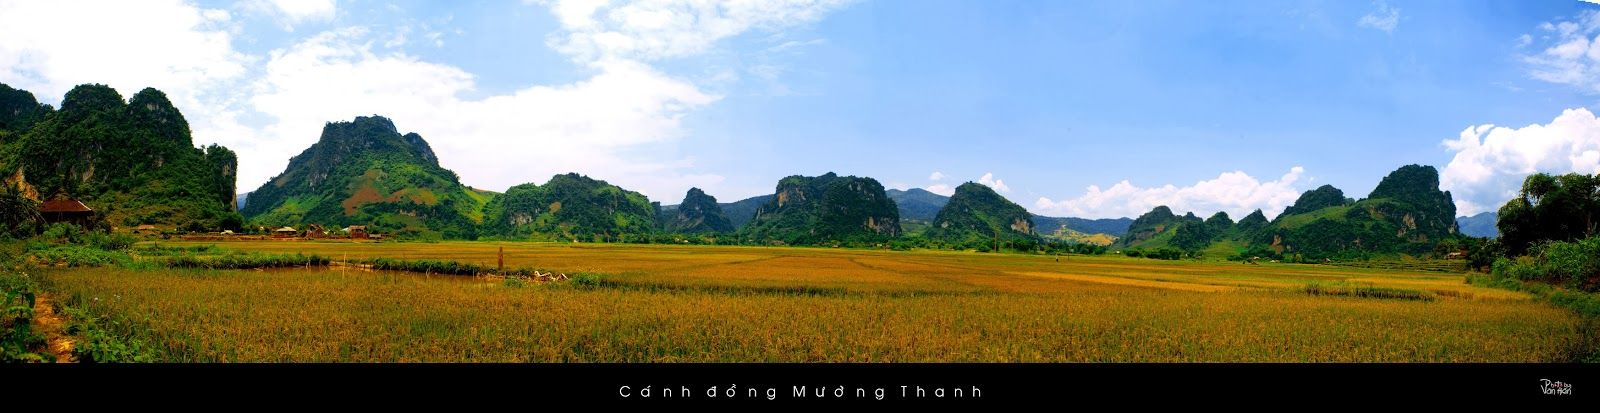 Muong Thanh Field